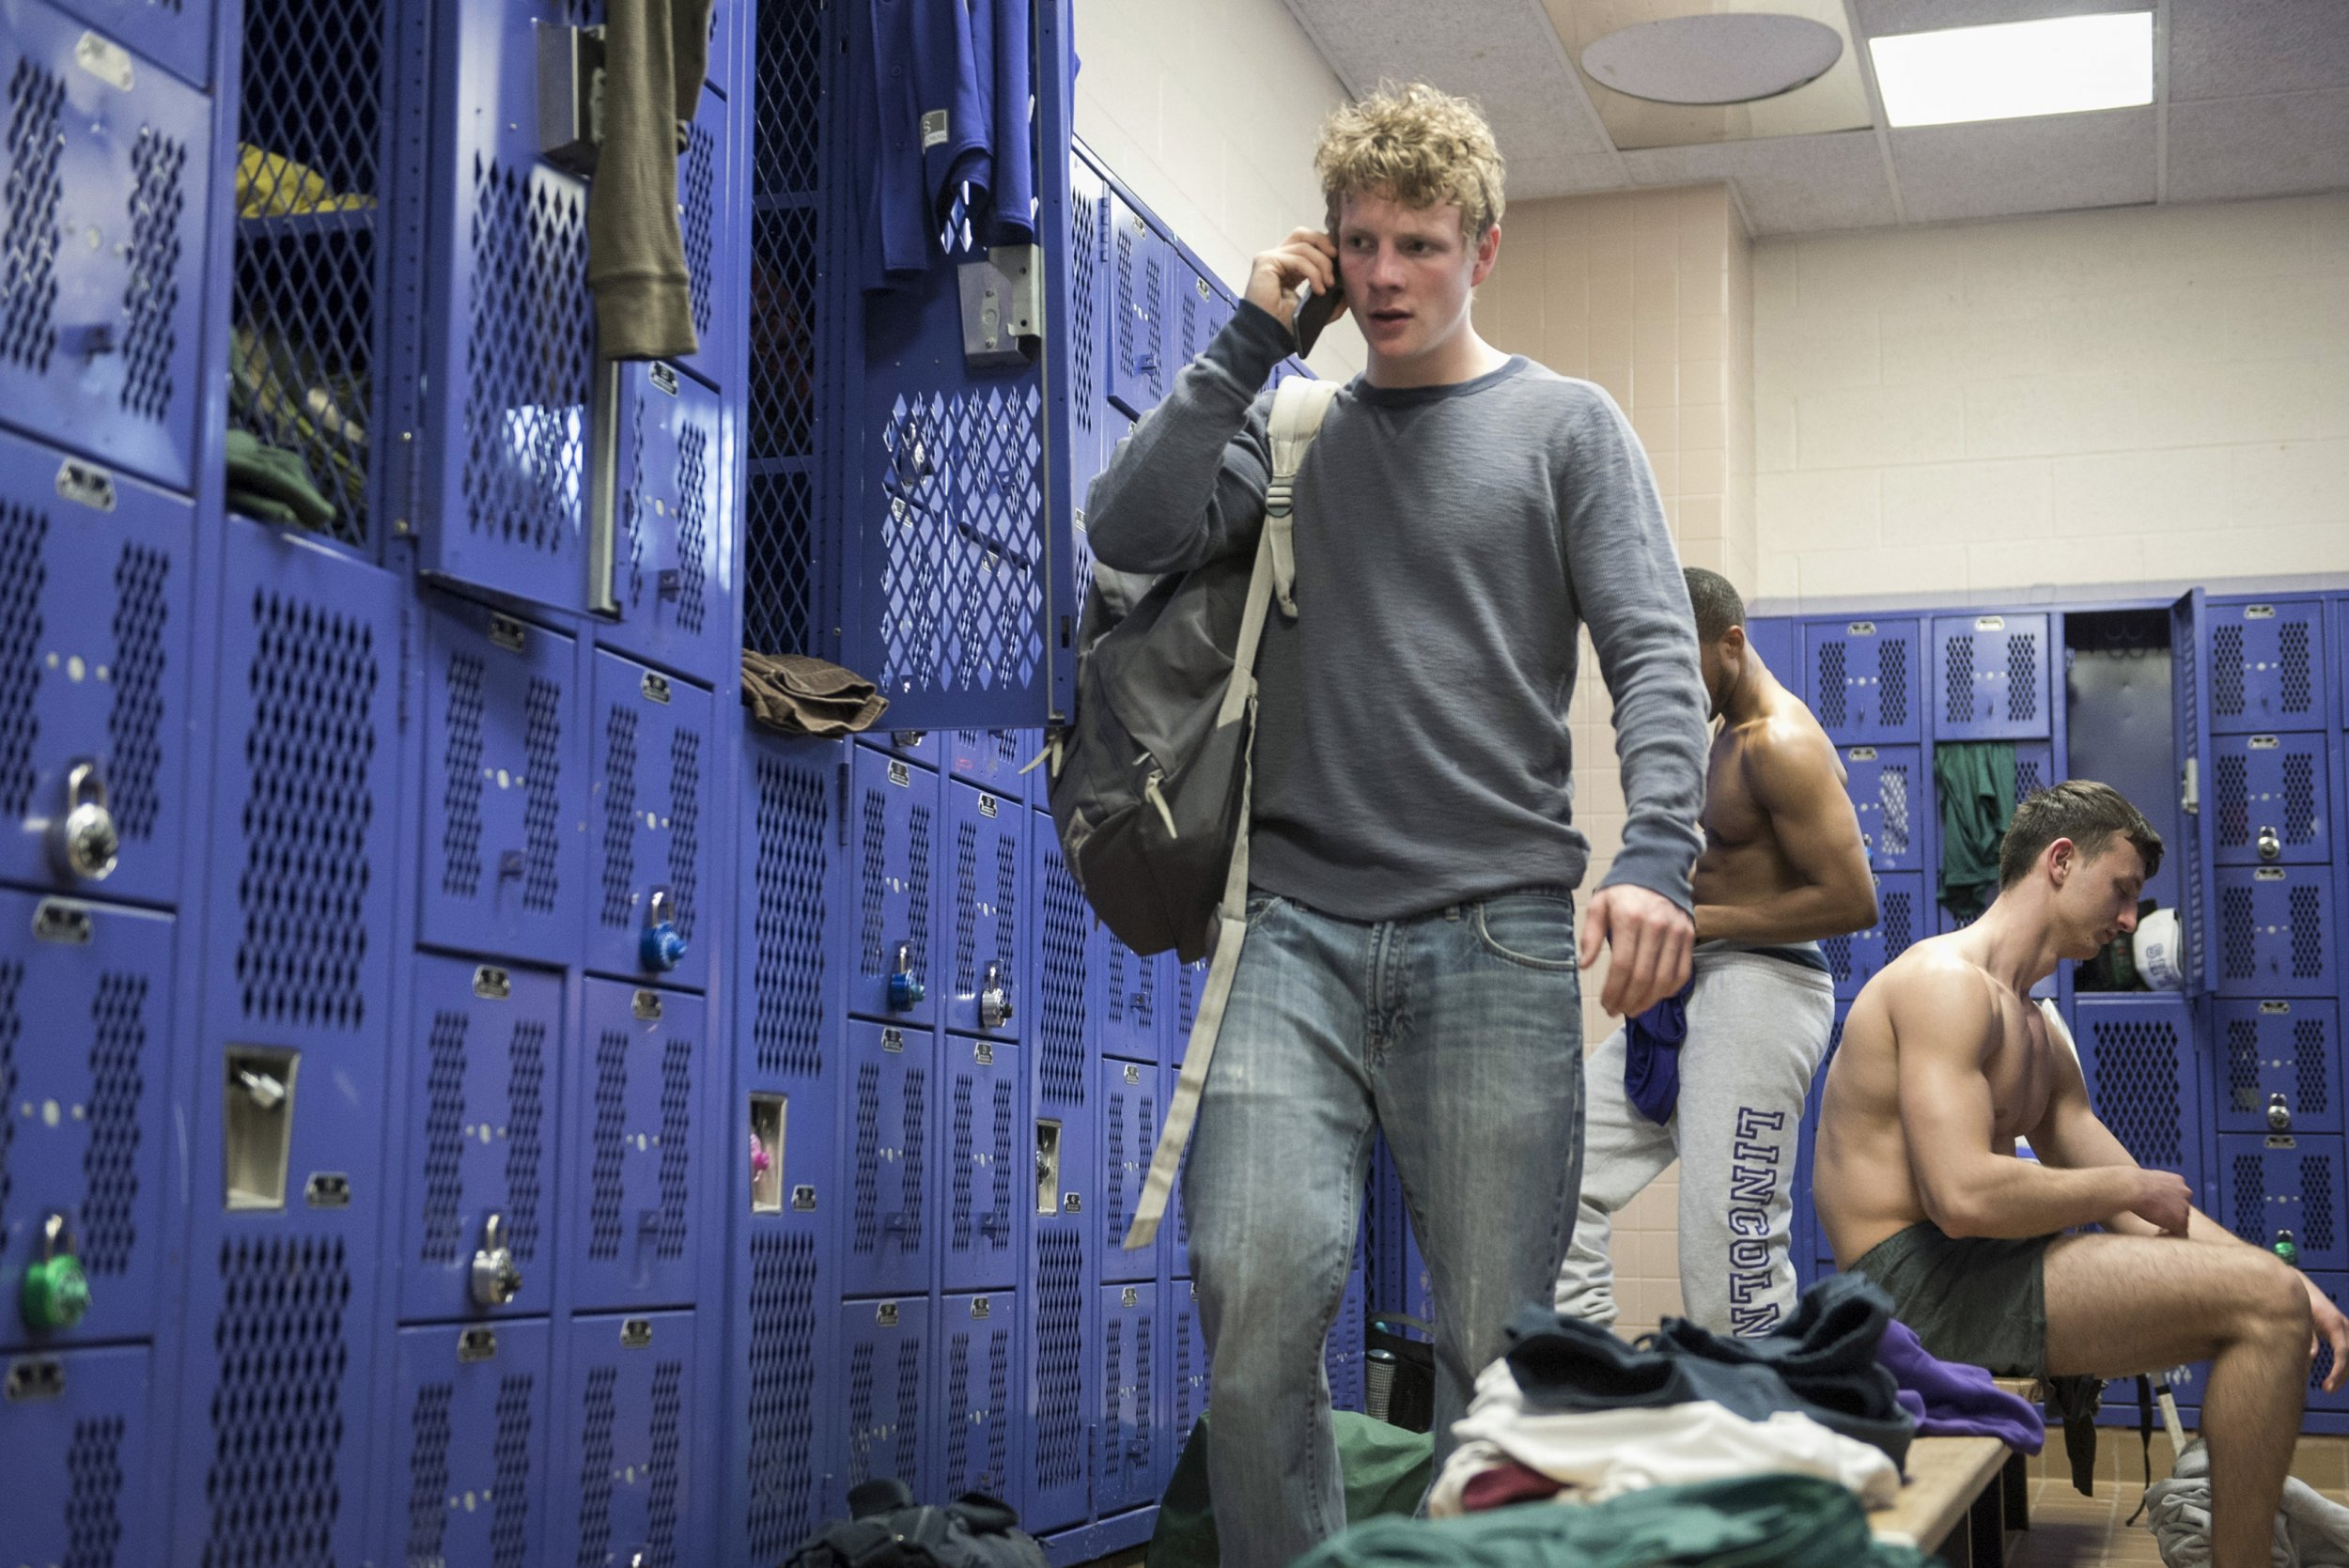 Patrick Gibson as Steve Winchell in The OA